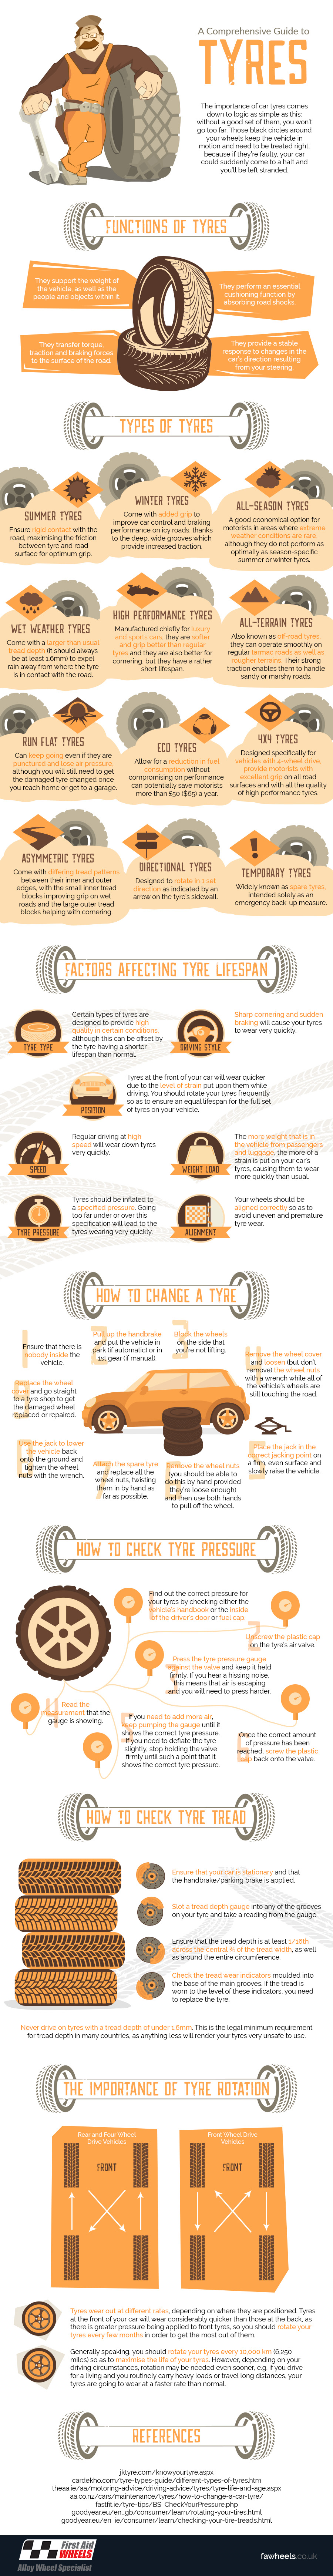 Comprehensive tyre guide